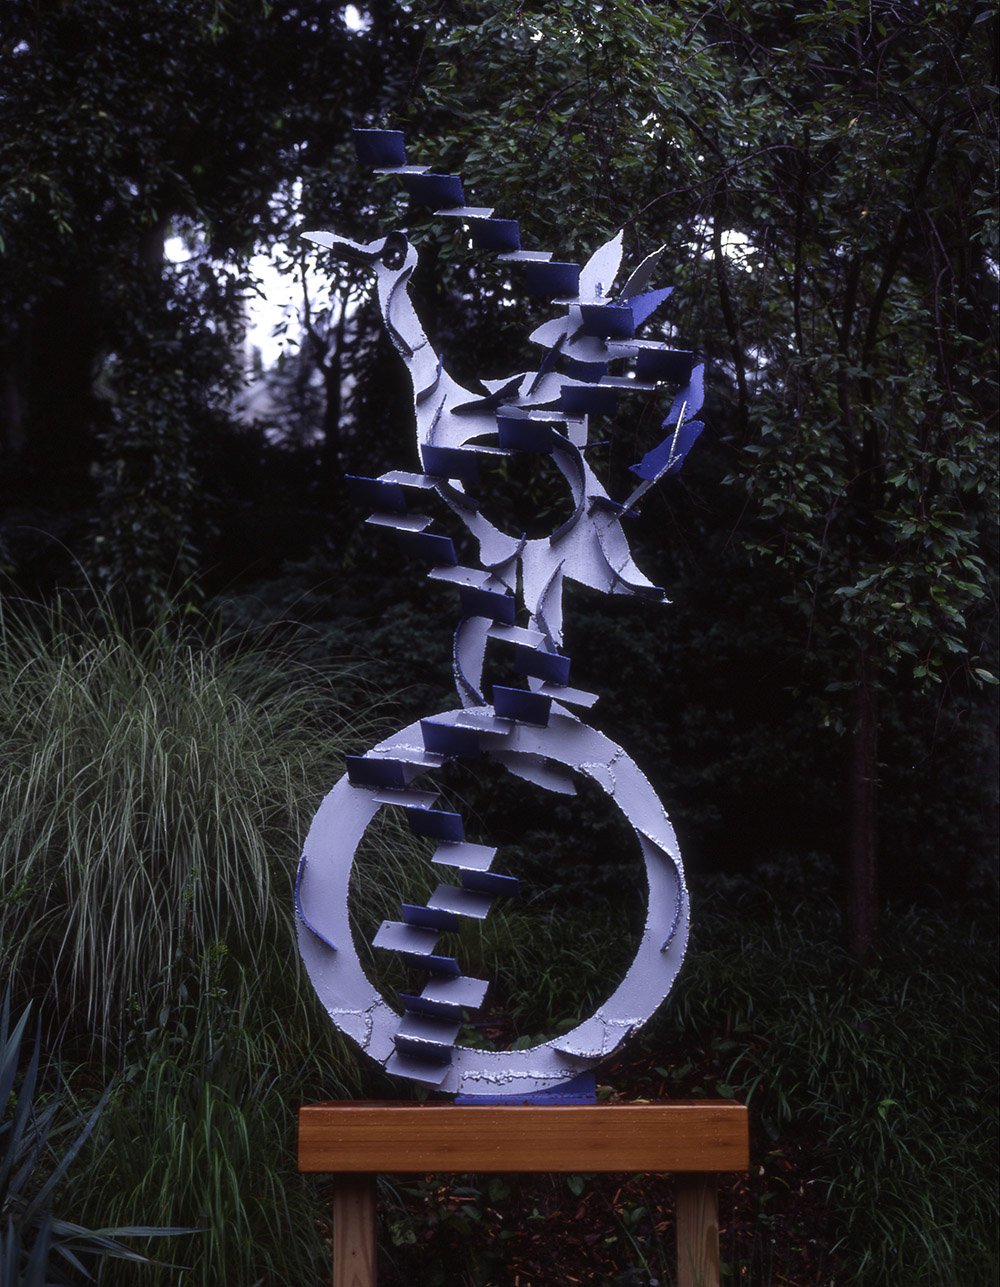 10.b-Ono-Flying-Over-the-Moon-2002.-Steel-213.4-x-76.2-x-15.2-cm-x.jpg